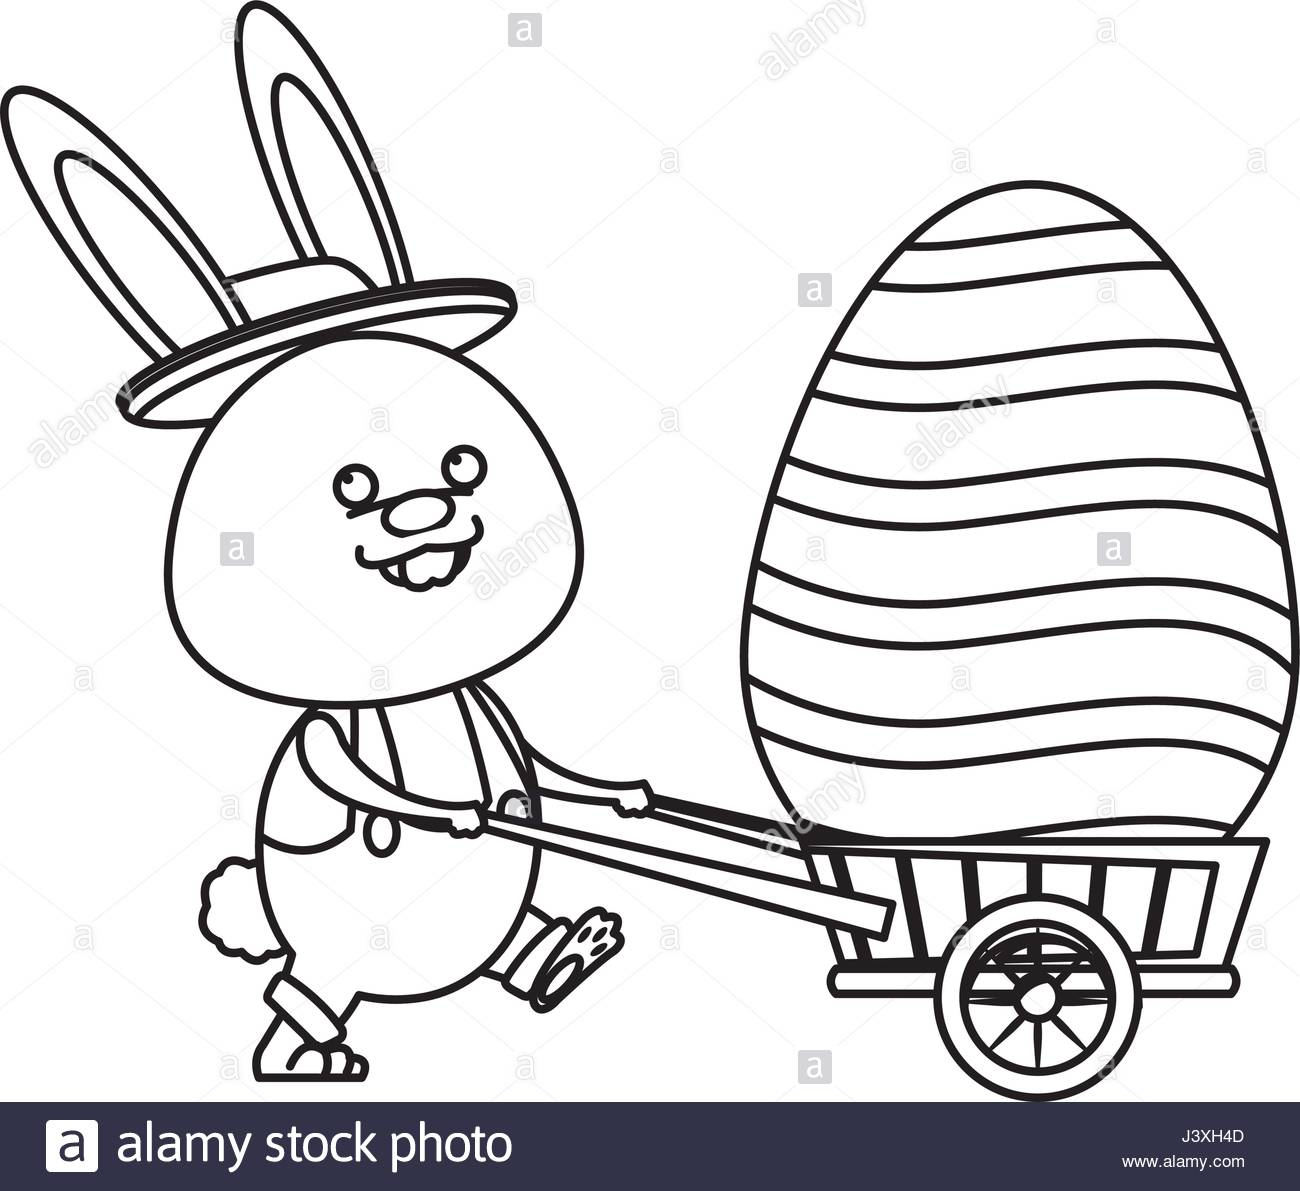 1300x1191 Easter Rabbit With Decor Egg Wheelbarrow Line Stock Vector Art